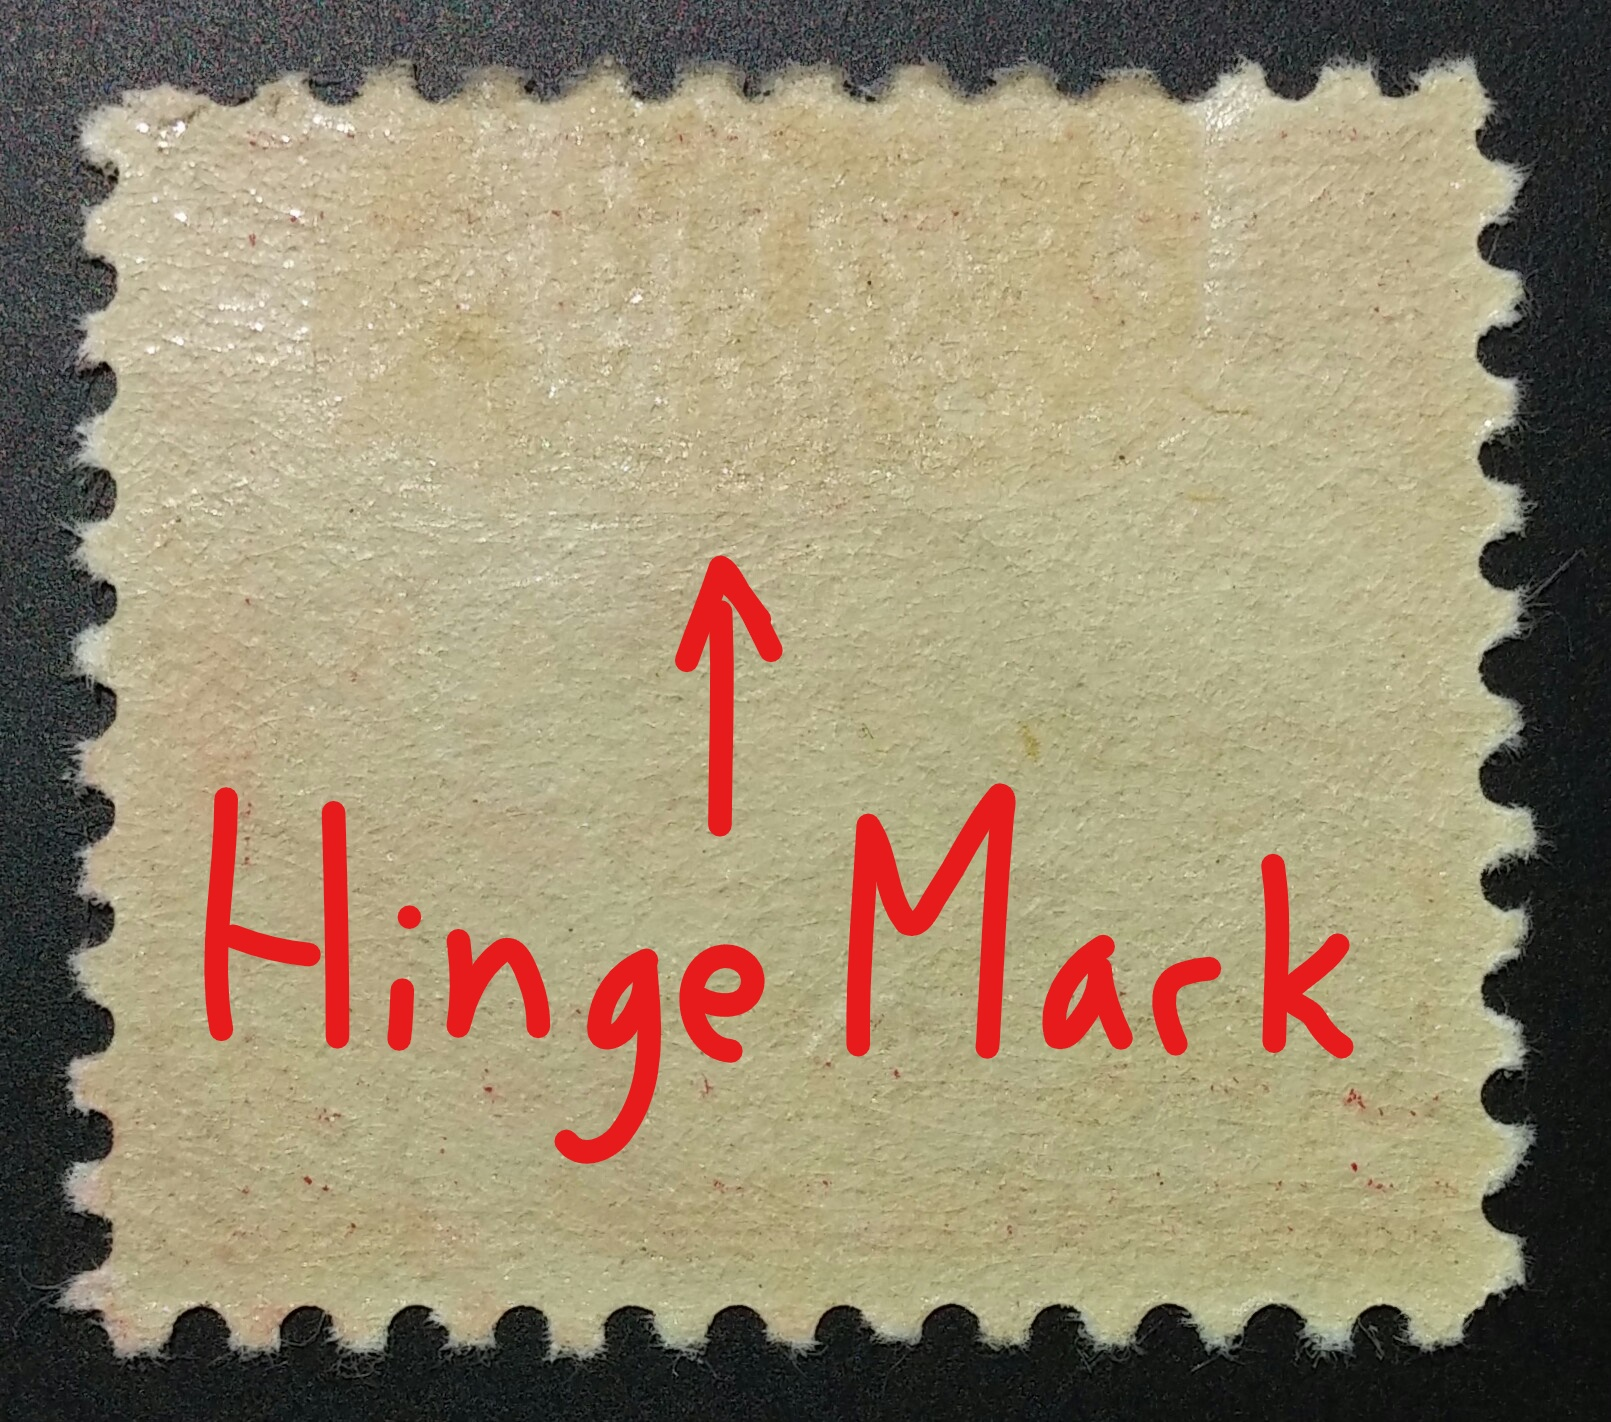 Previously hinged stamp